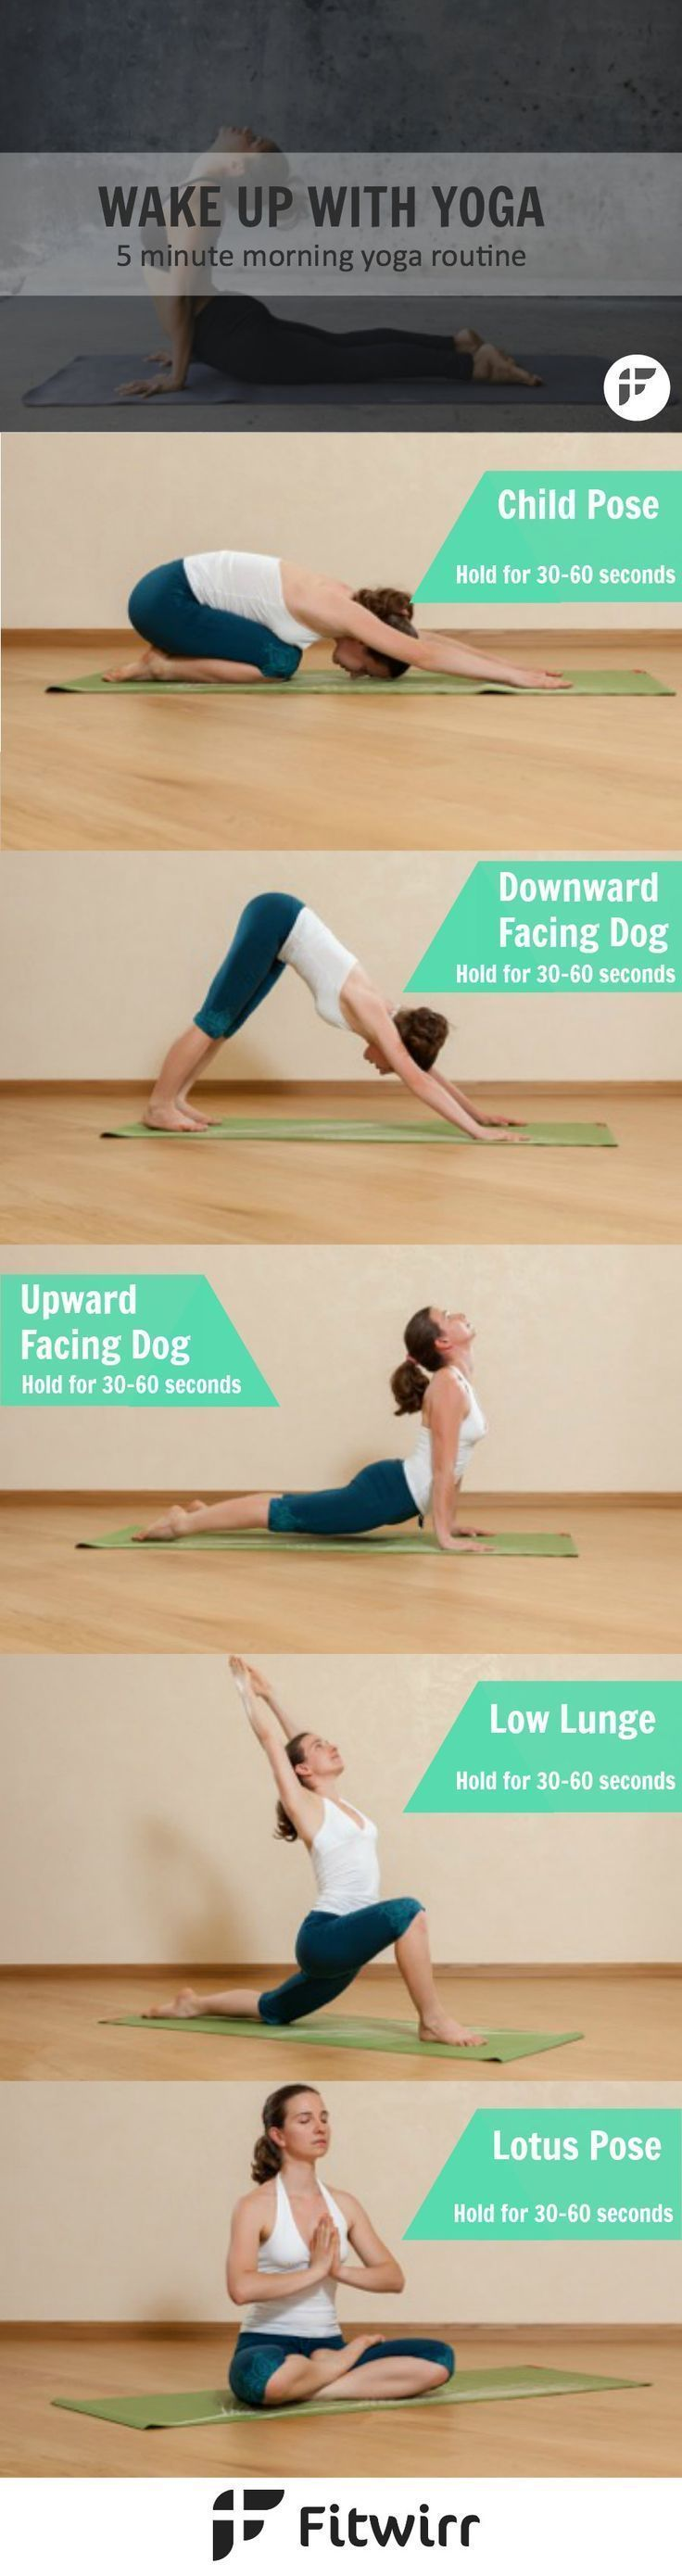 5-Minute Morning Yoga Routine to start your day with a calm and clear mind. Yoga for beginners. (Pinterest: @OneTribeApparel)